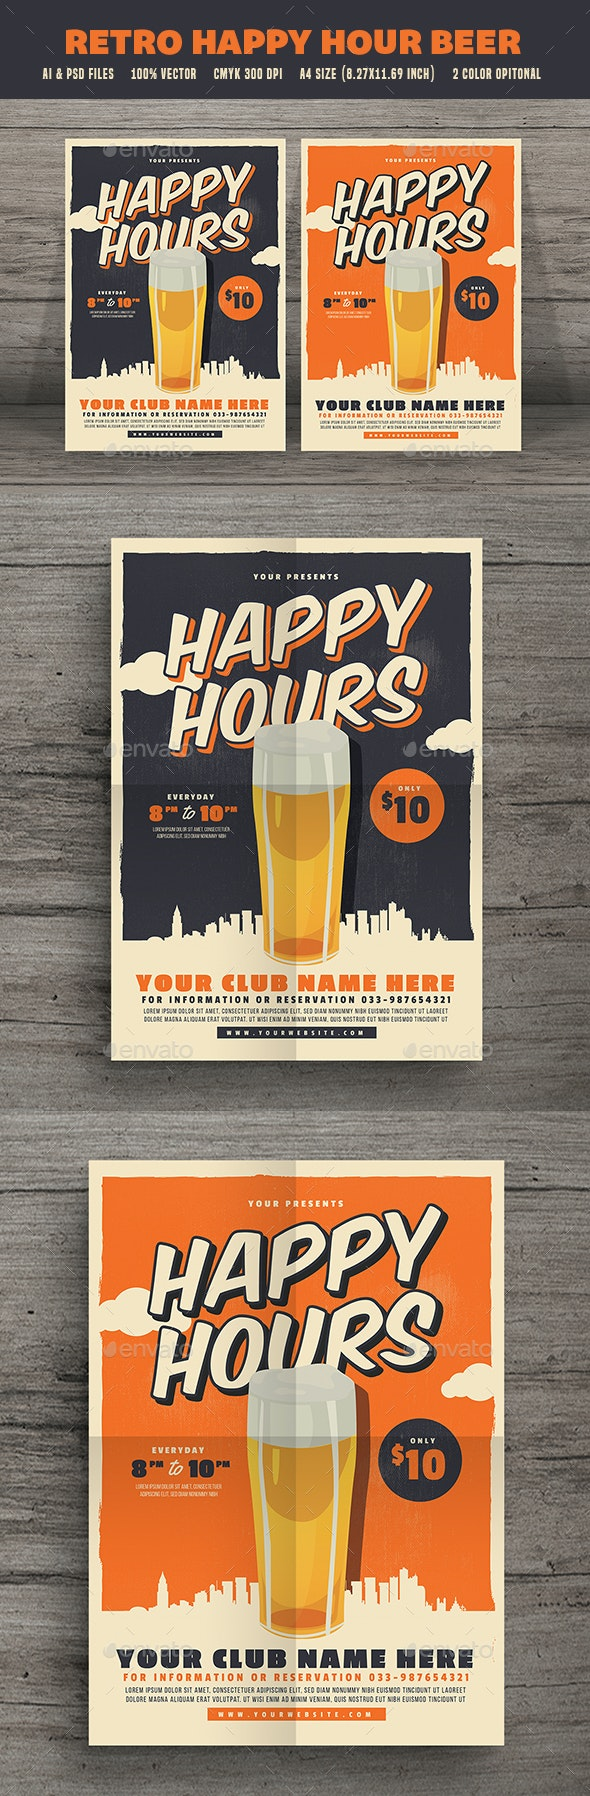 Retro Happy Hour Beer Festival - Events Flyers